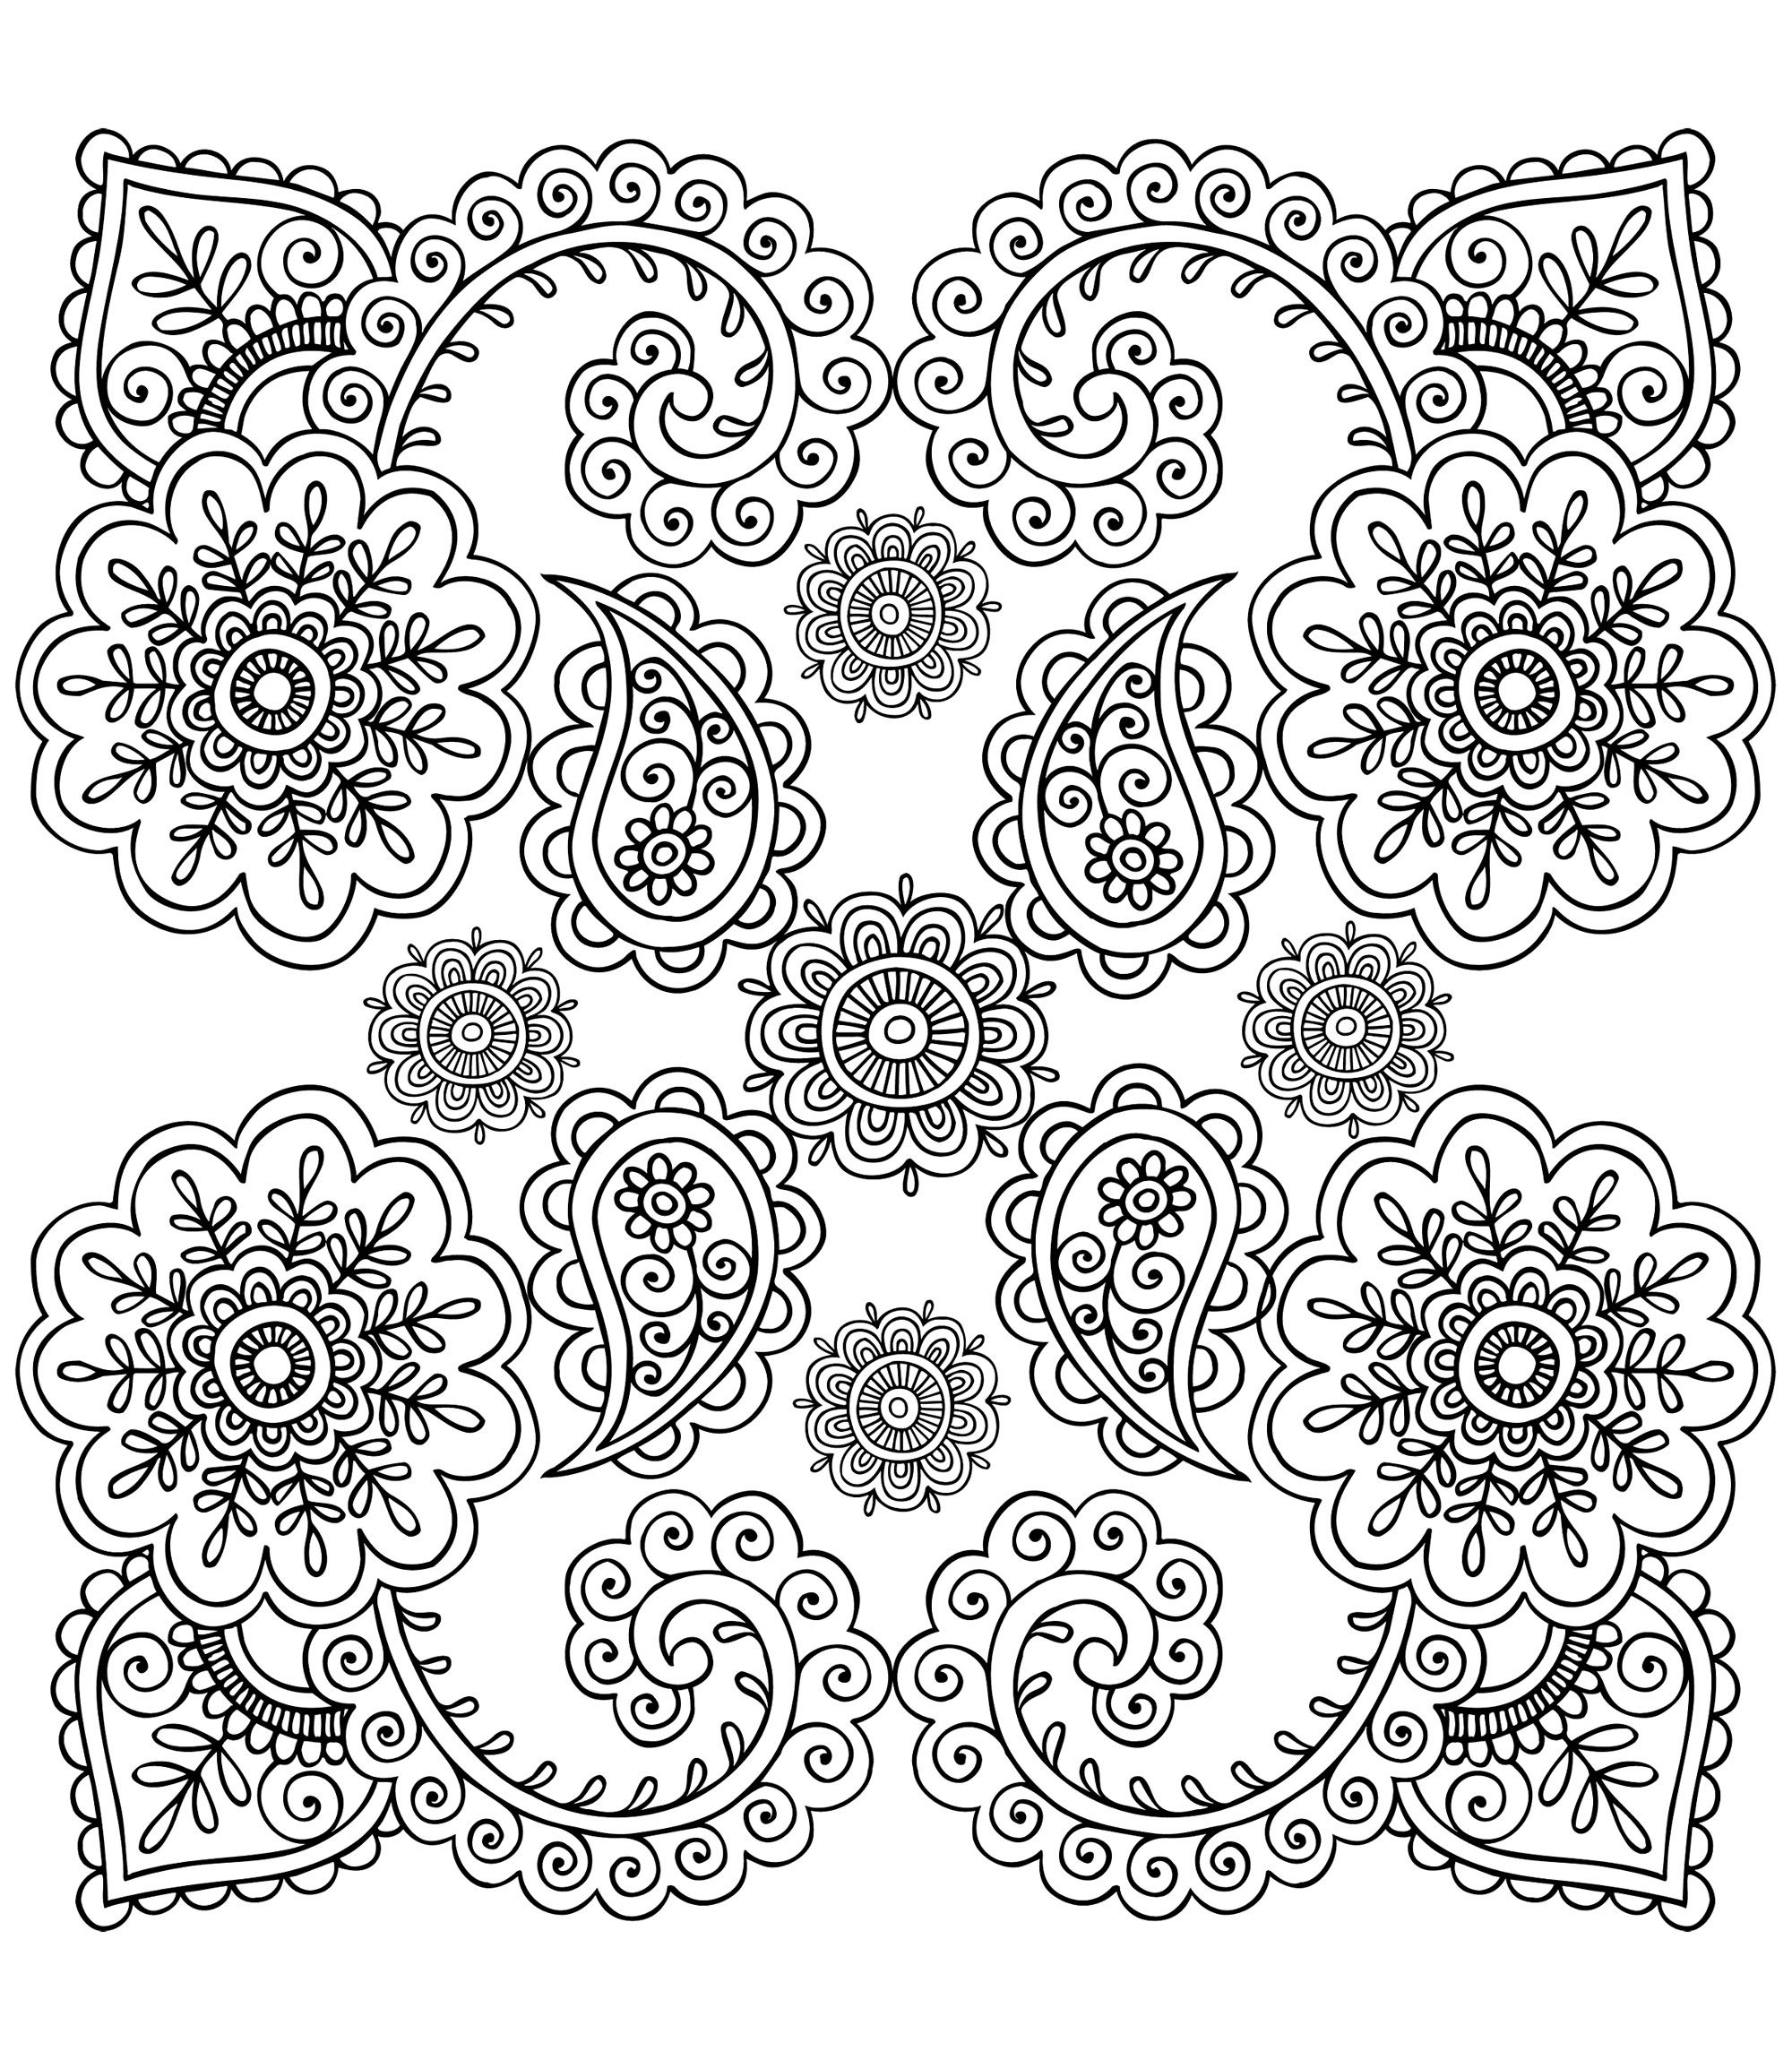 Anti Stress Flowers Zen And Anti Stress Coloring Pages For